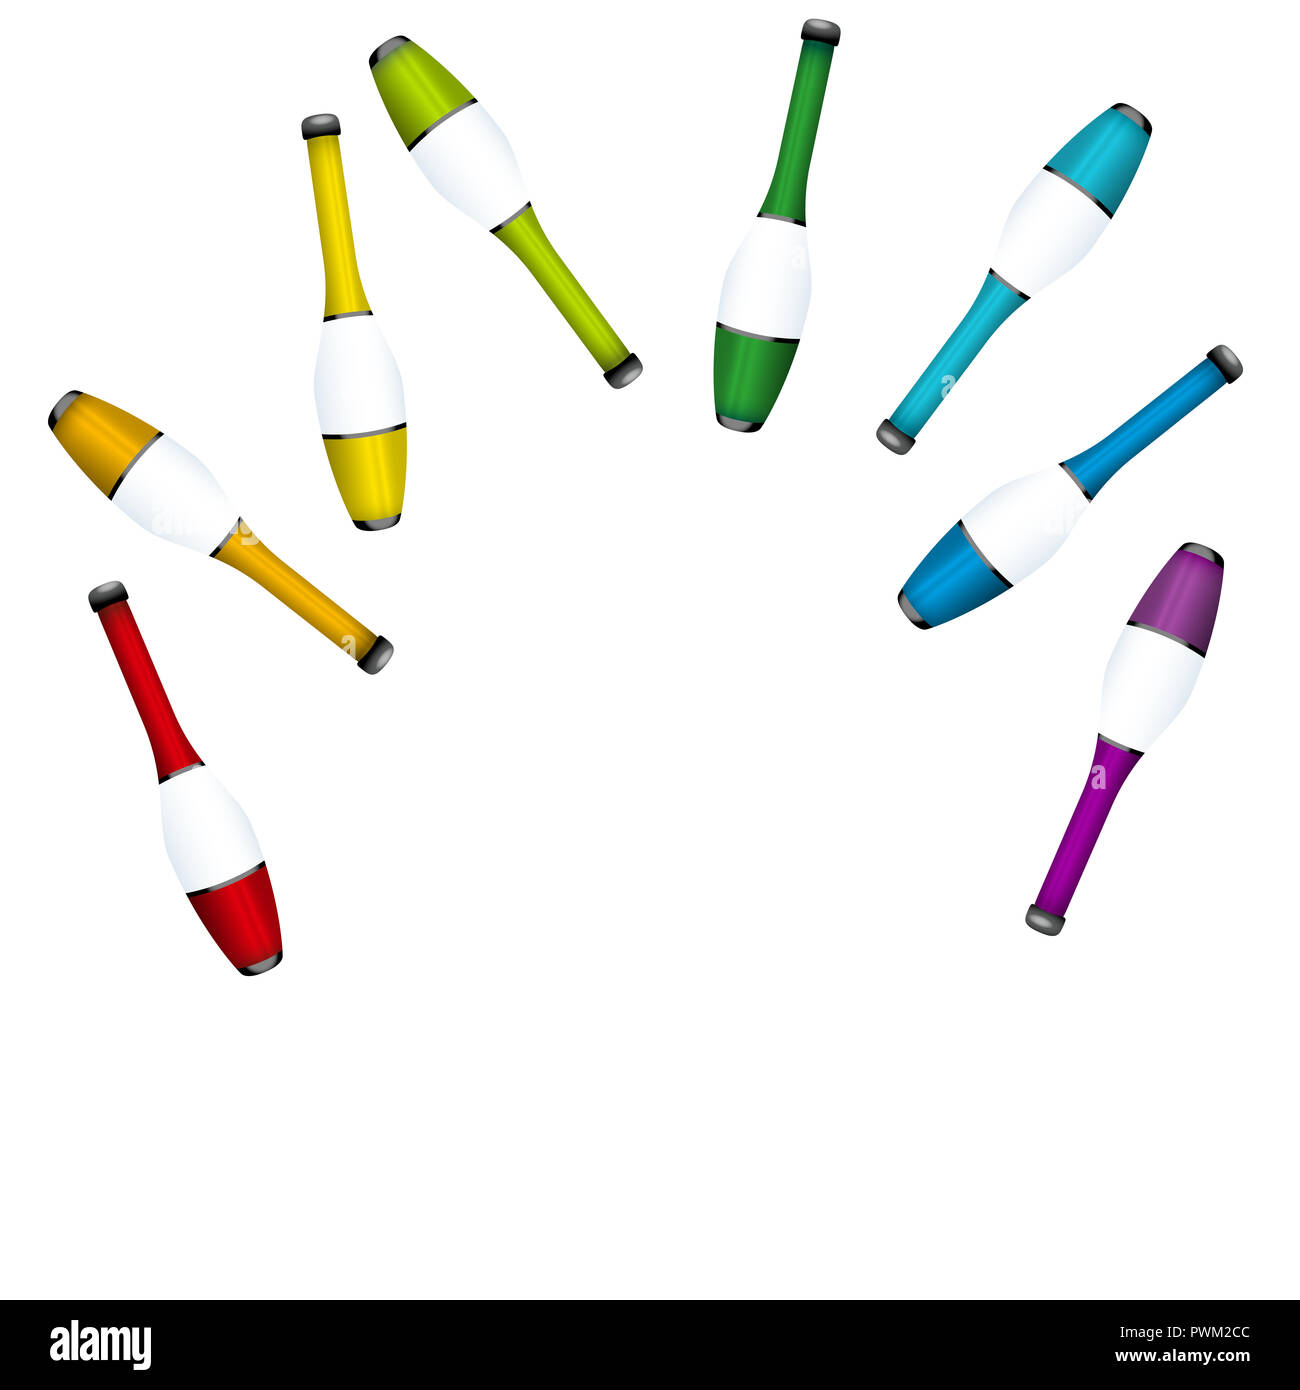 Throwing up juggling clubs, insert any person. Colored set for acrobats to juggle a highly concentrated performance. - Stock Image